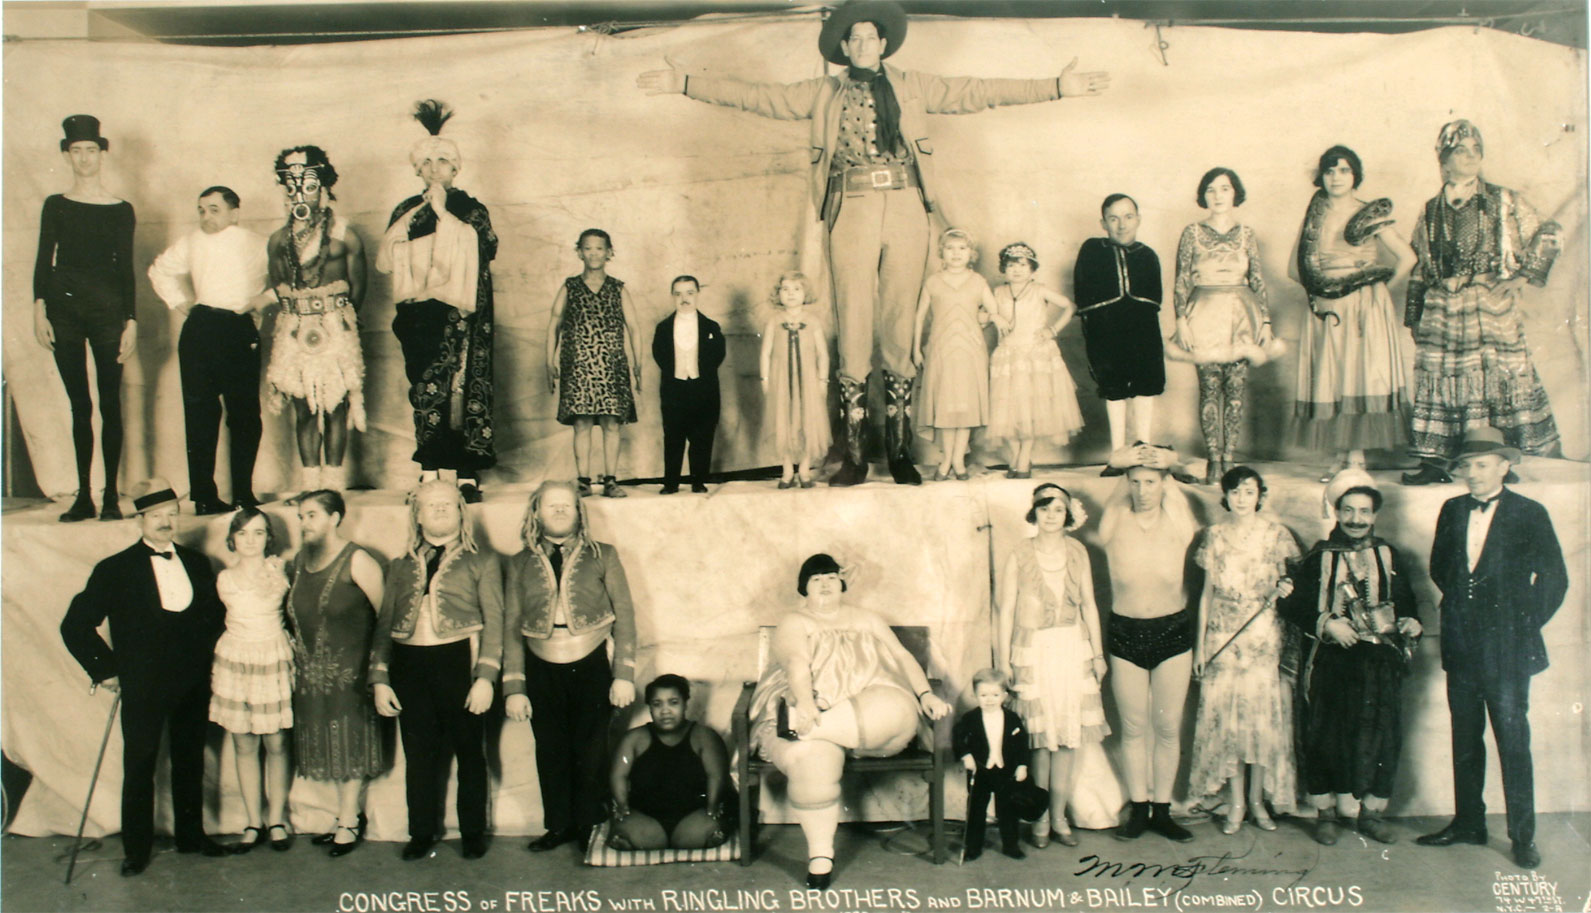 Edward J. Kelty (American, 1888–1967) panoramic photo of Ringling Bros. Barnum & Bailey 'Congress of Freaks.' Ross Art Group image.